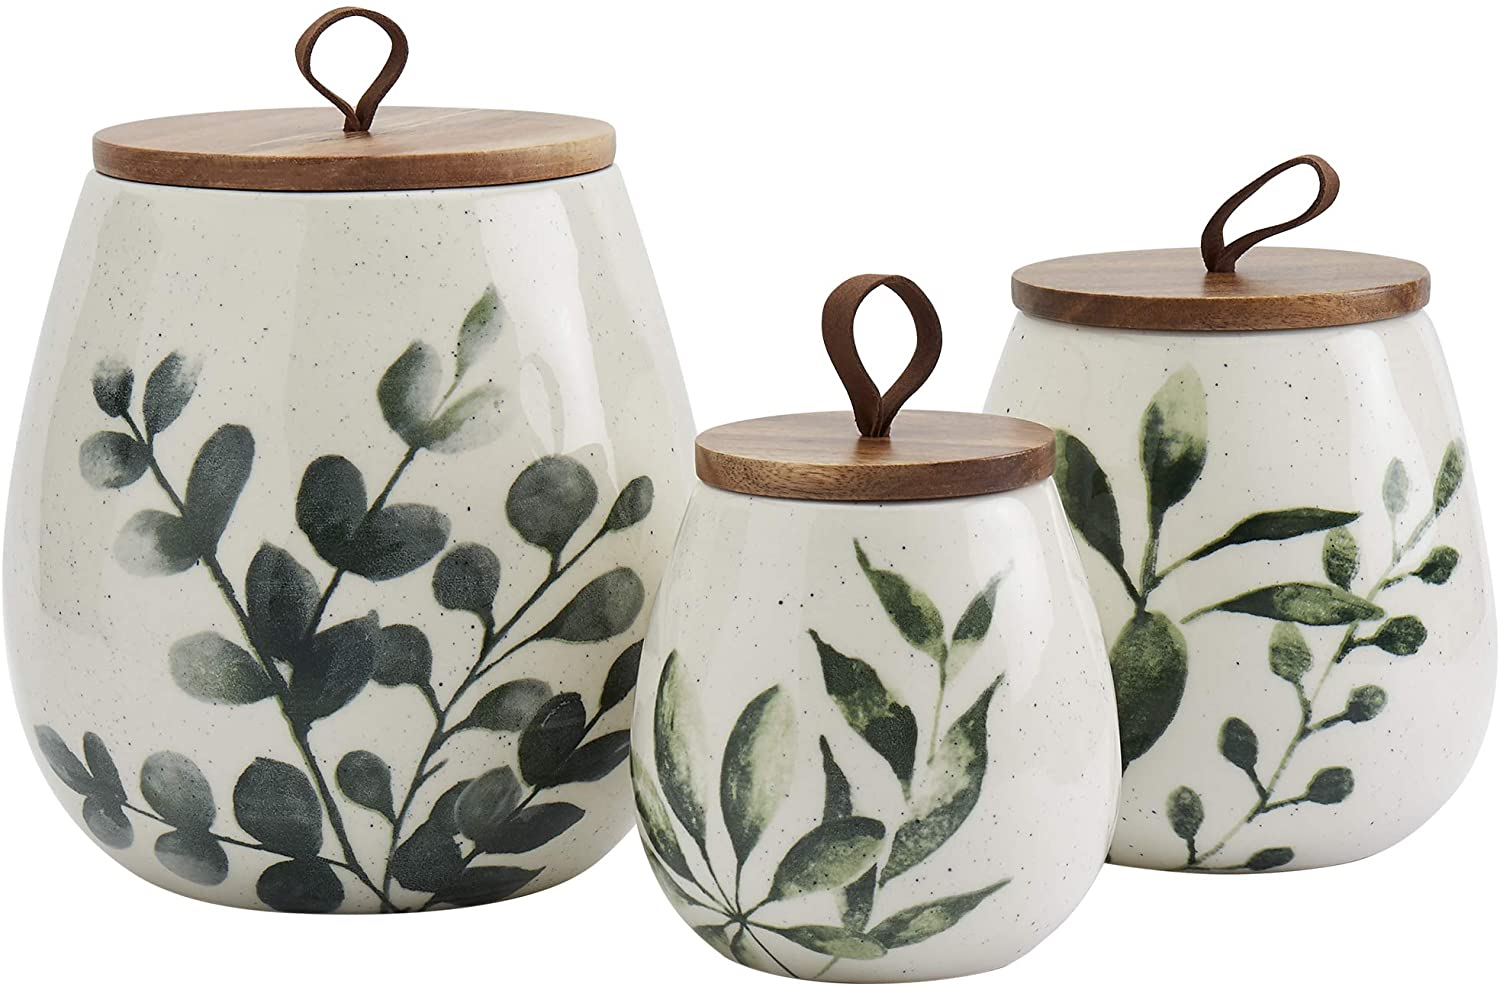 Tabletops Limited price Gallery Ceramic Canister Stoneware cheap Designe Collection-